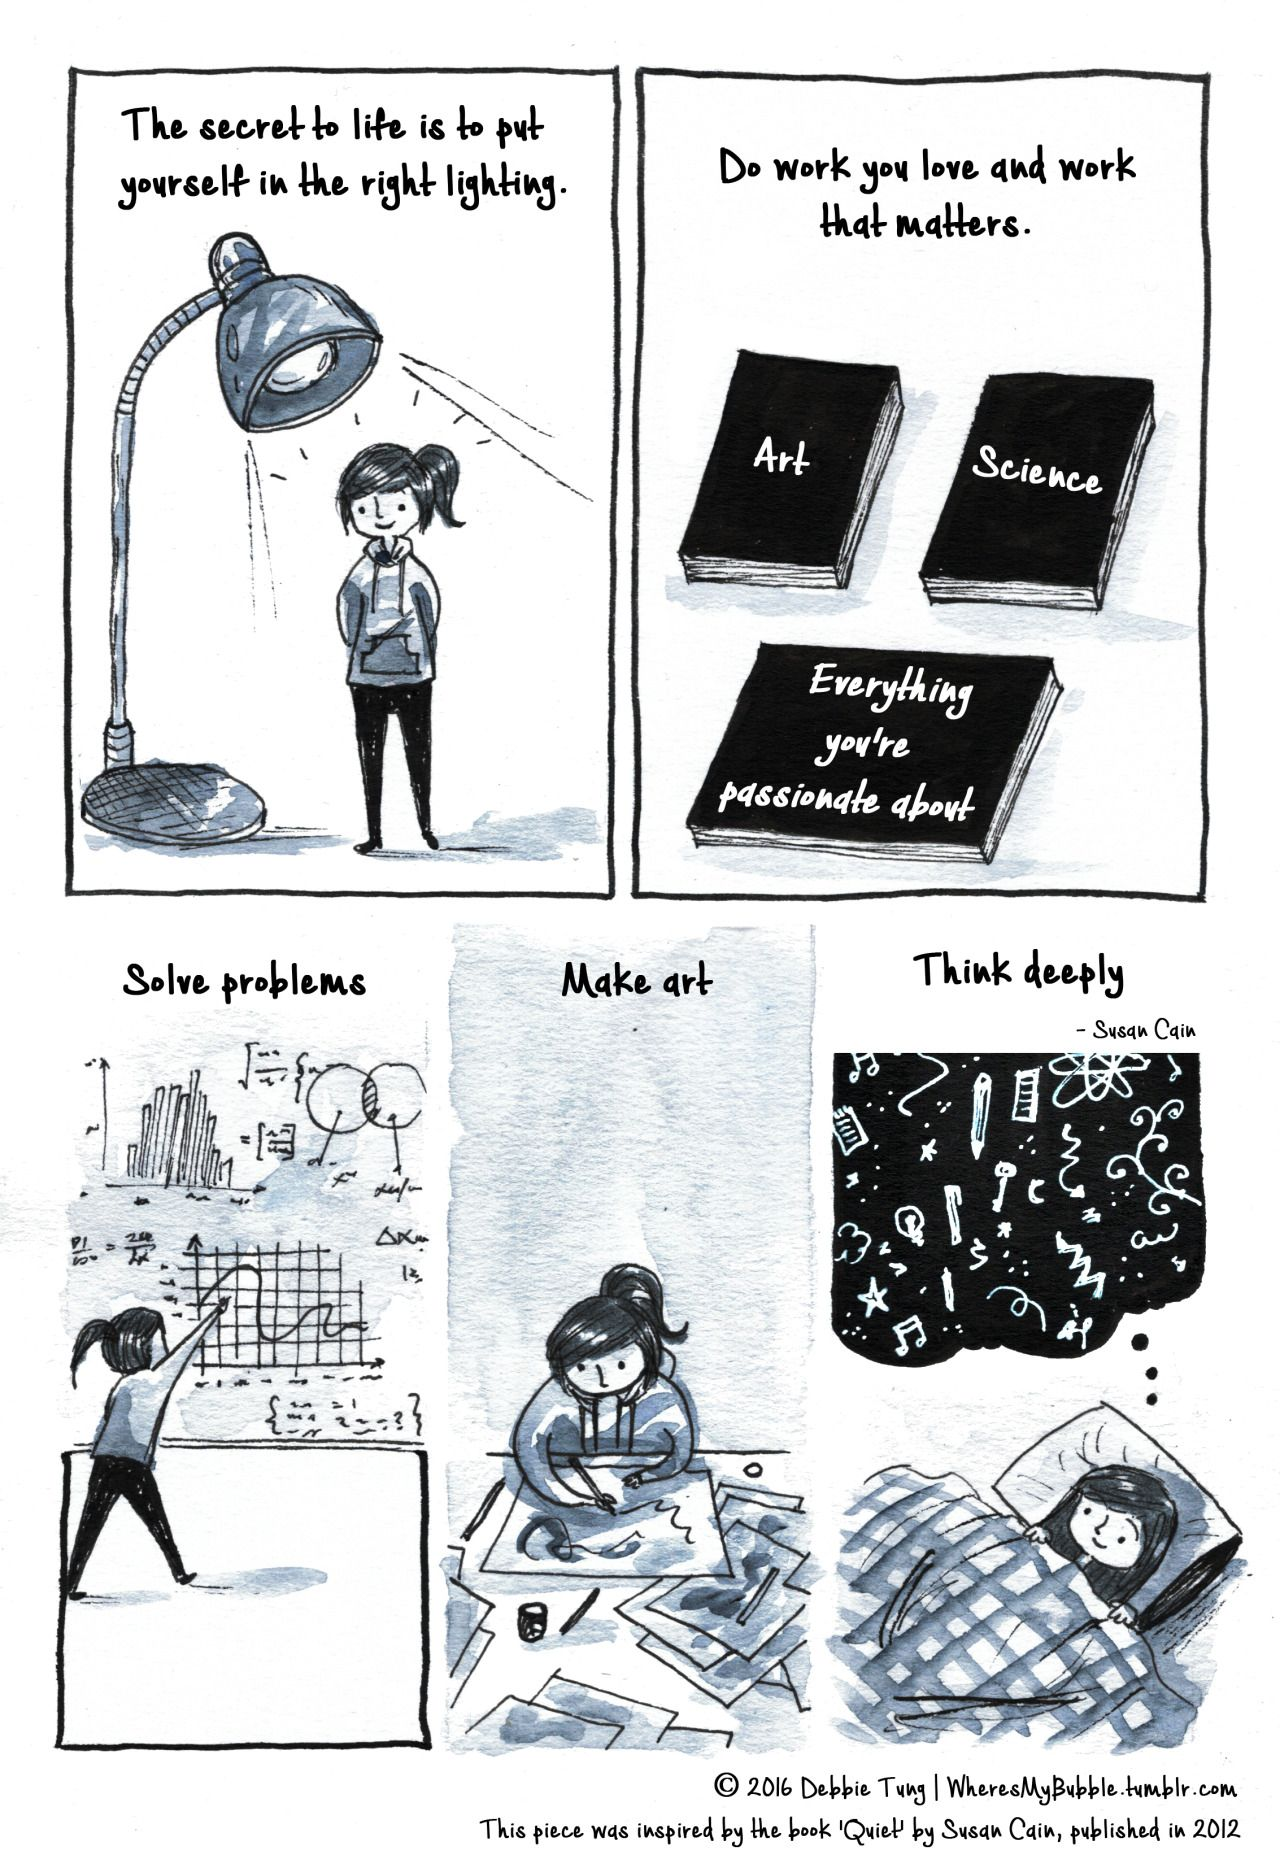 """wheresmybubble: """"This comic was inspired by Susan Cain's amazing book, 'Quiet' which was published in 2012.  """""""